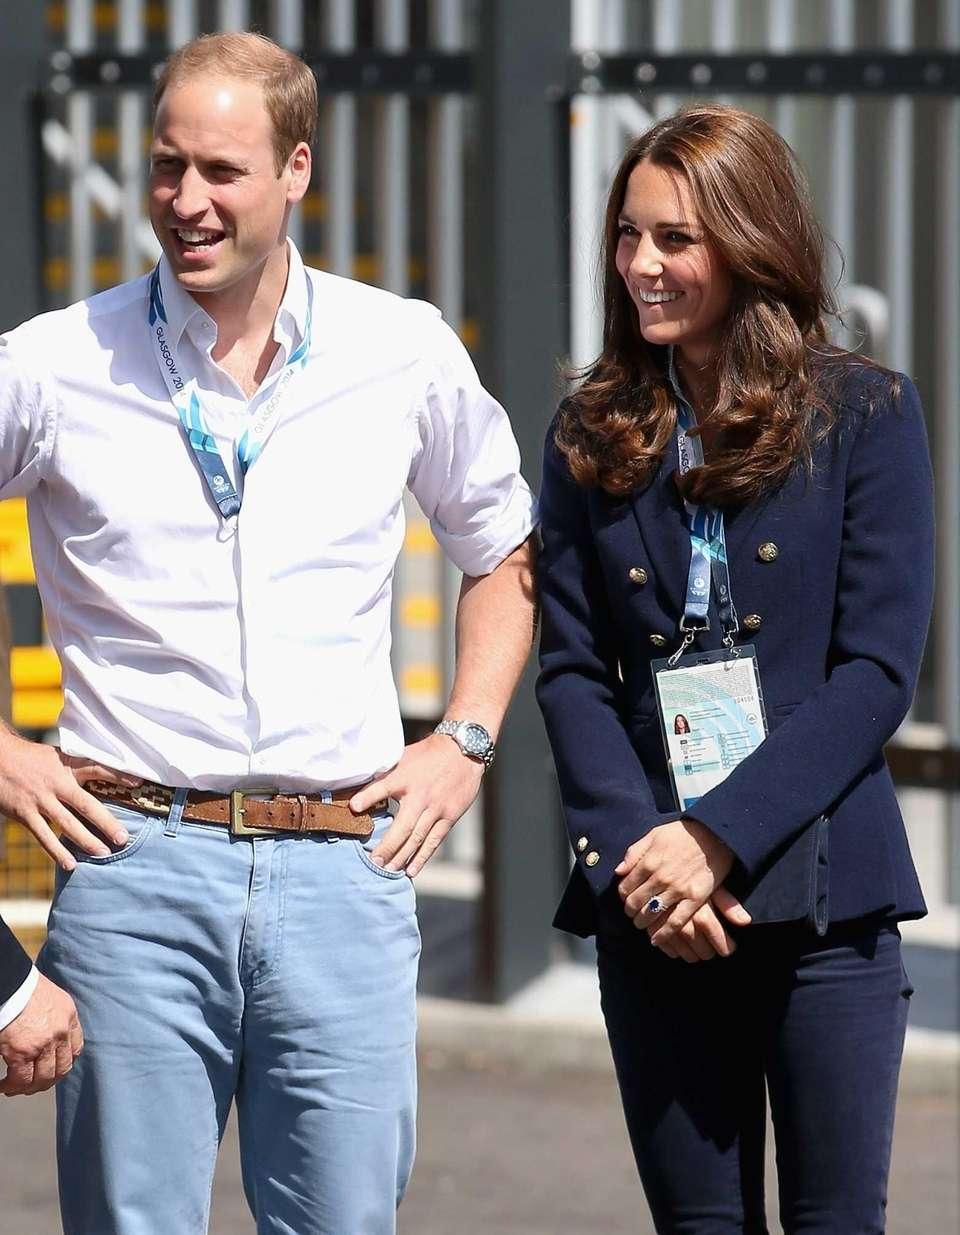 Prince William and wife Catherine, the Duke and